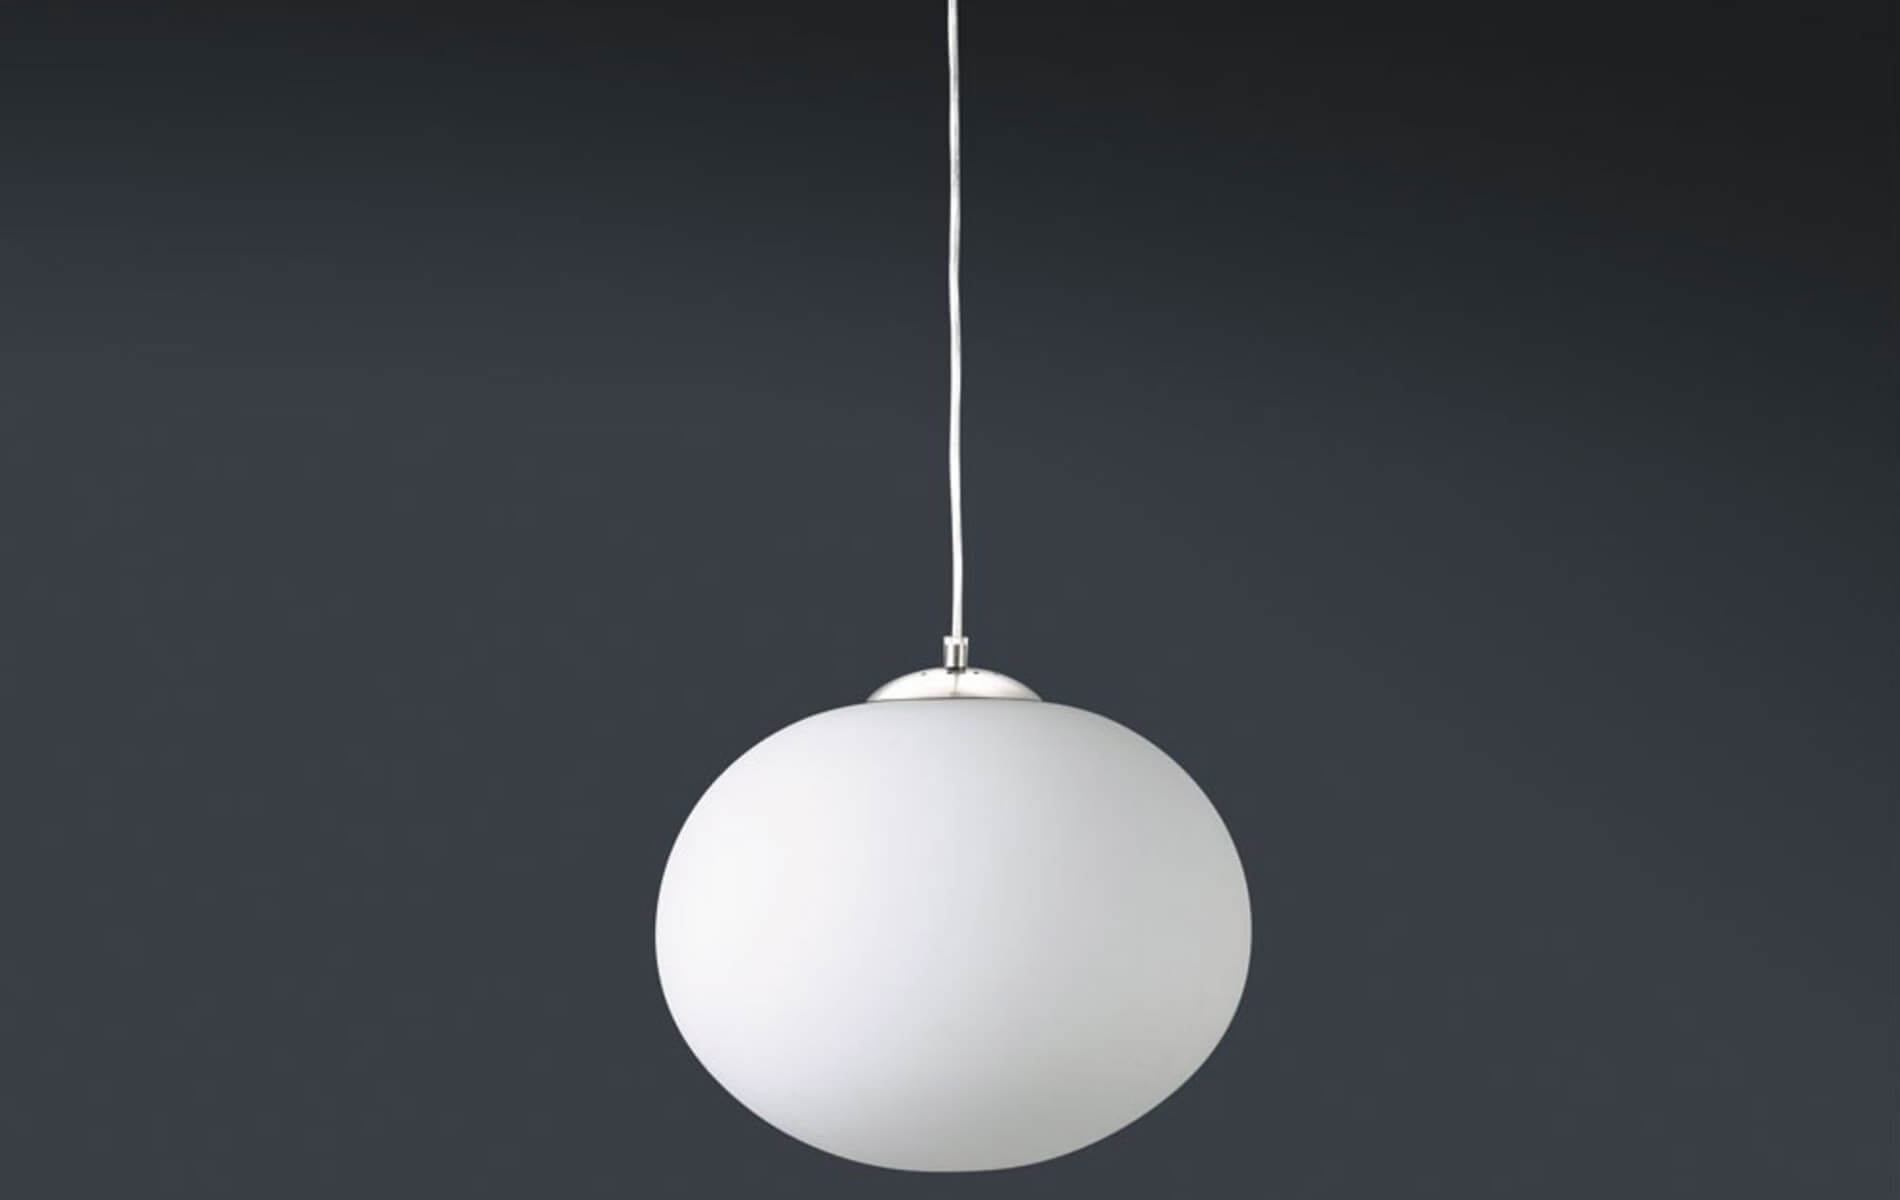 More information of Leds C4 NIMES pendant lamp